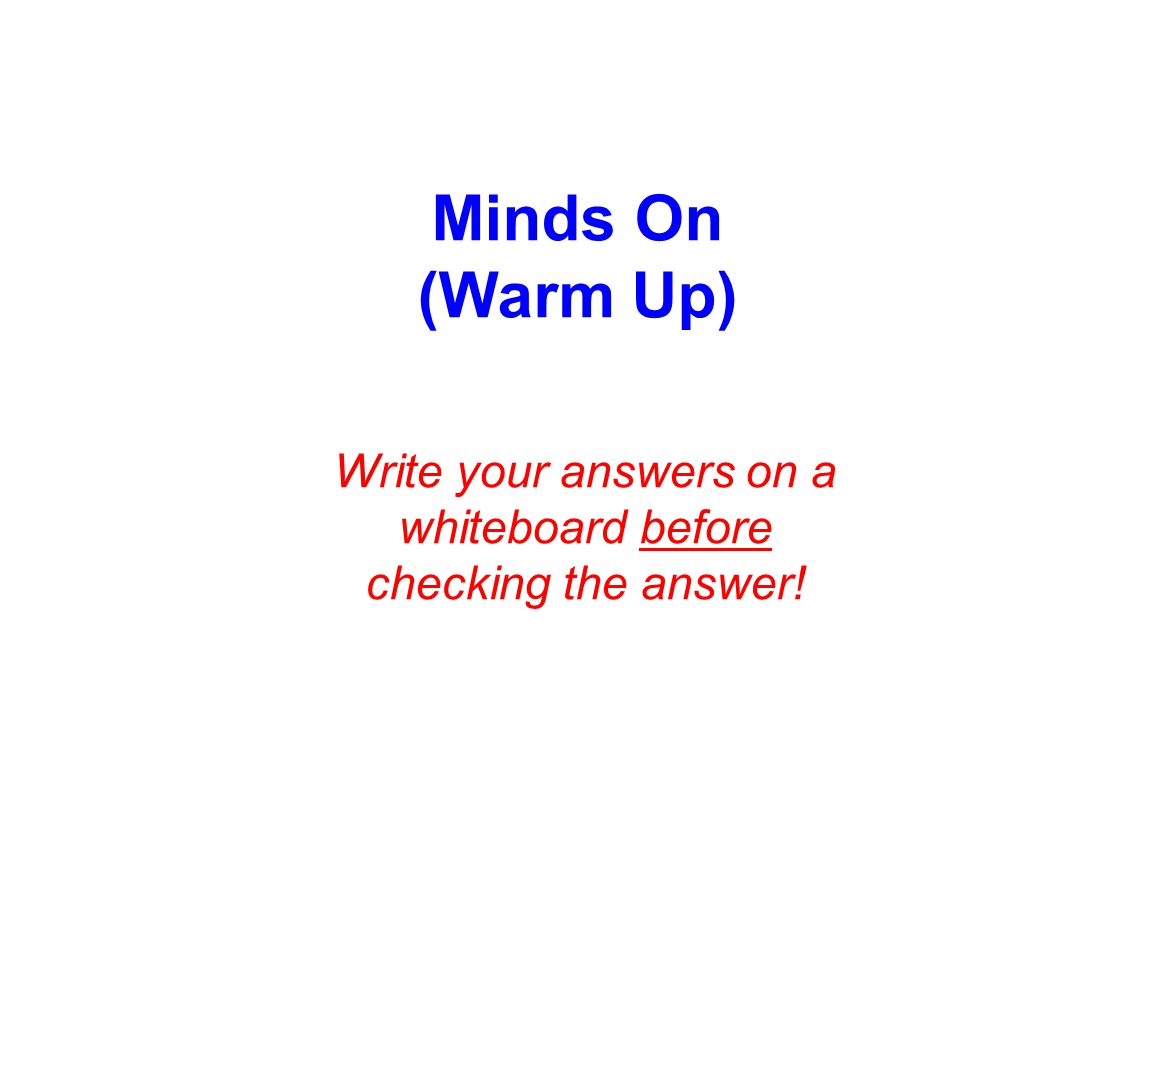 Minds On (Warm Up) Write your answers on a whiteboard before checking the answer!